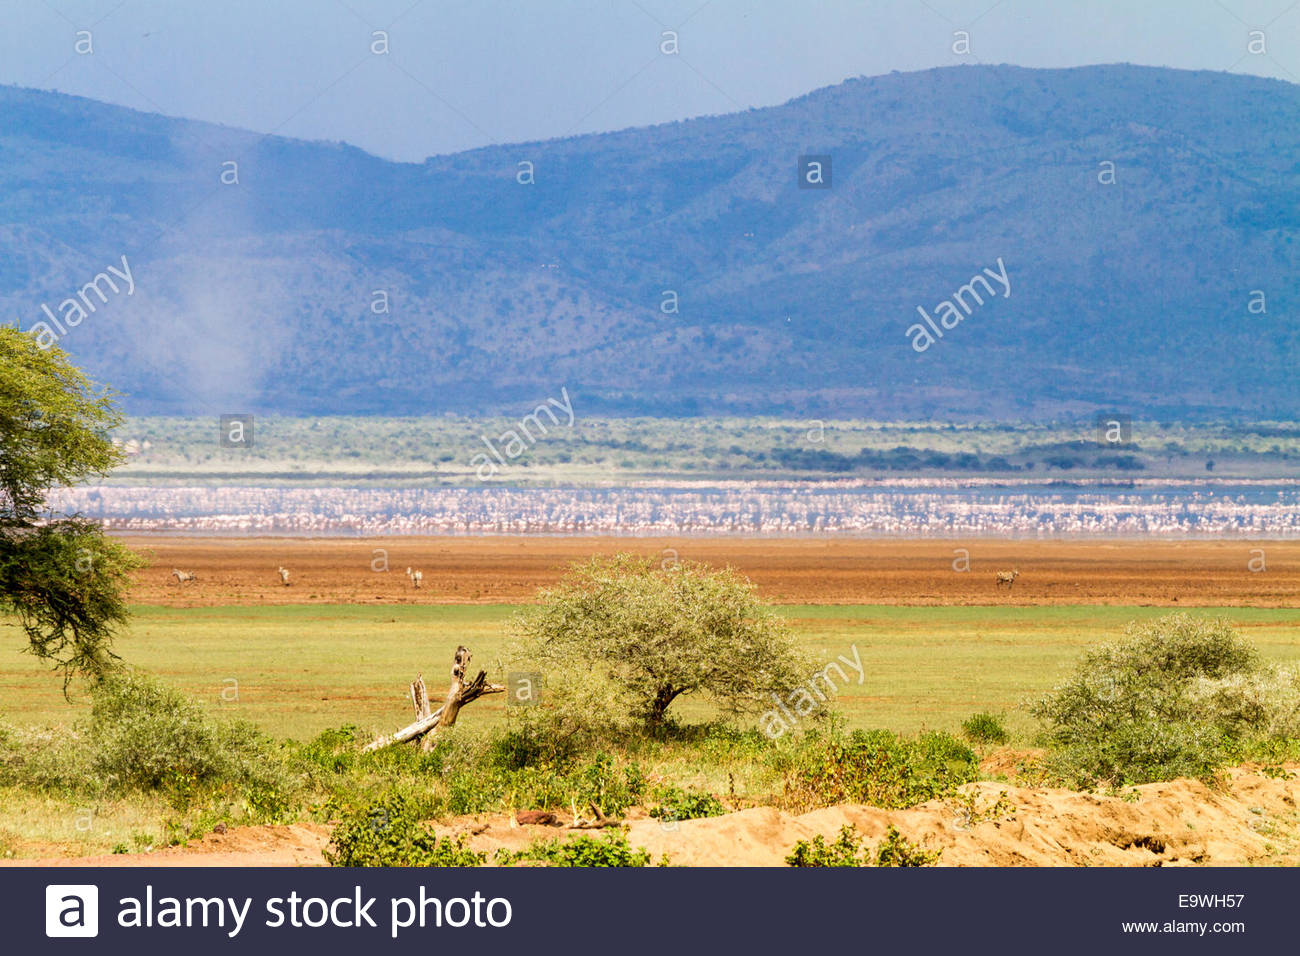 Antelope at Lake Manyara National Park - East Africa - Tanzania - Stock Image